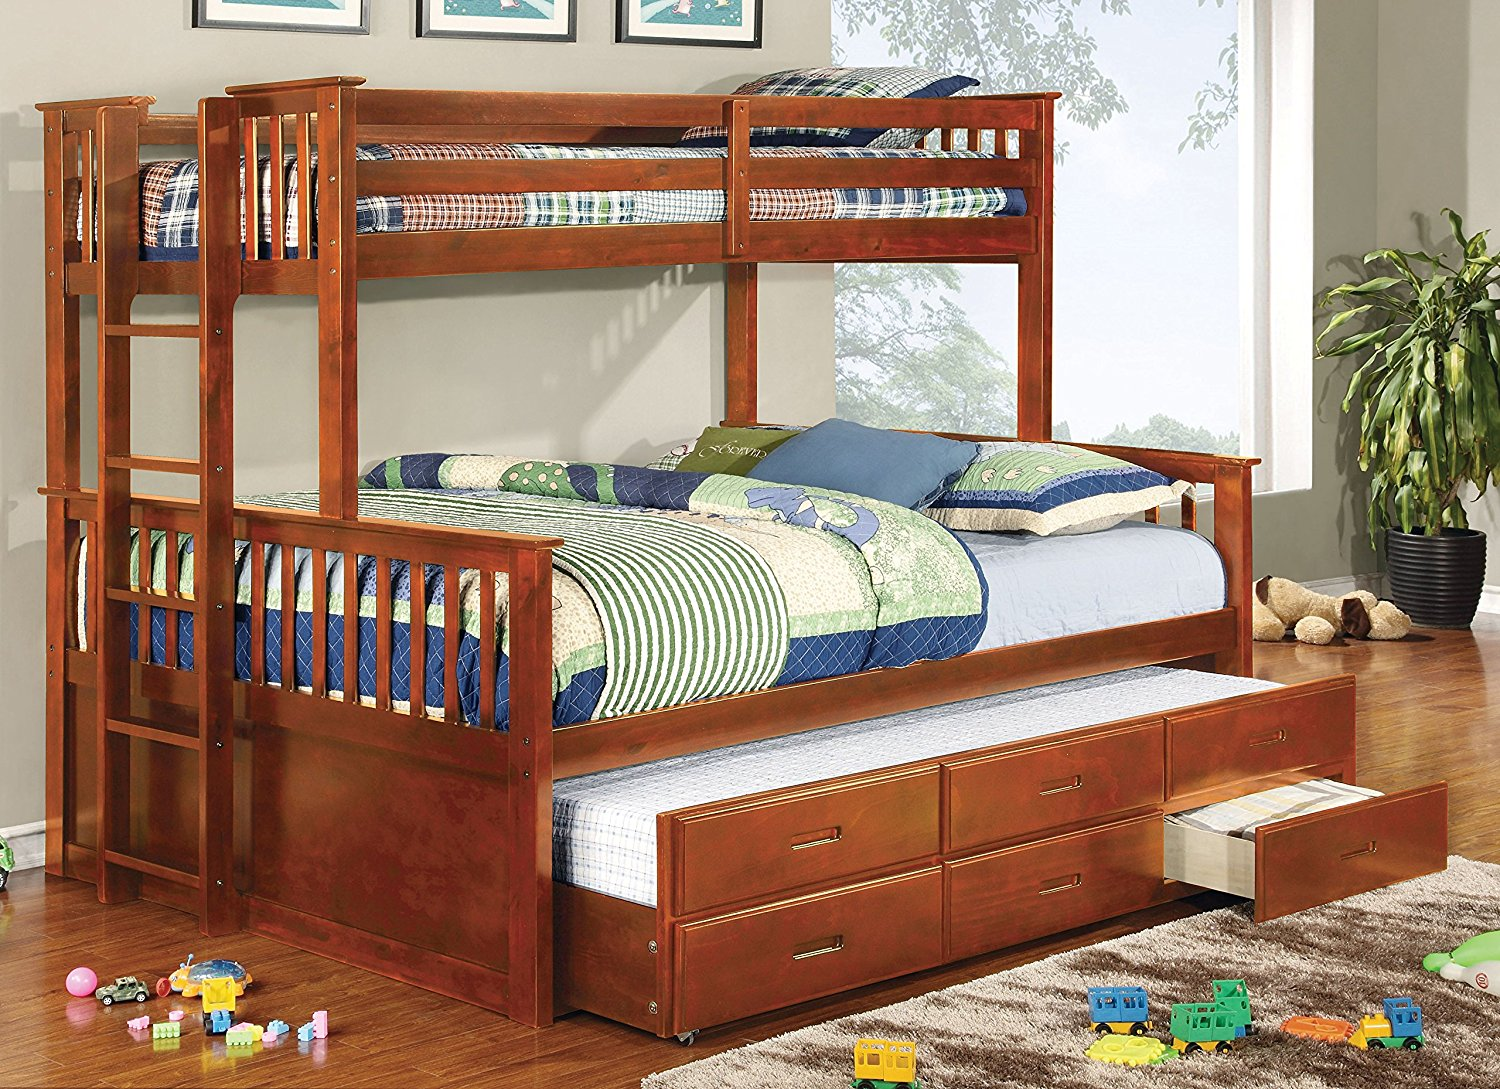 Brand new Best Bunk Beds 2018 – Top 10 Reviews & Comparison SP11